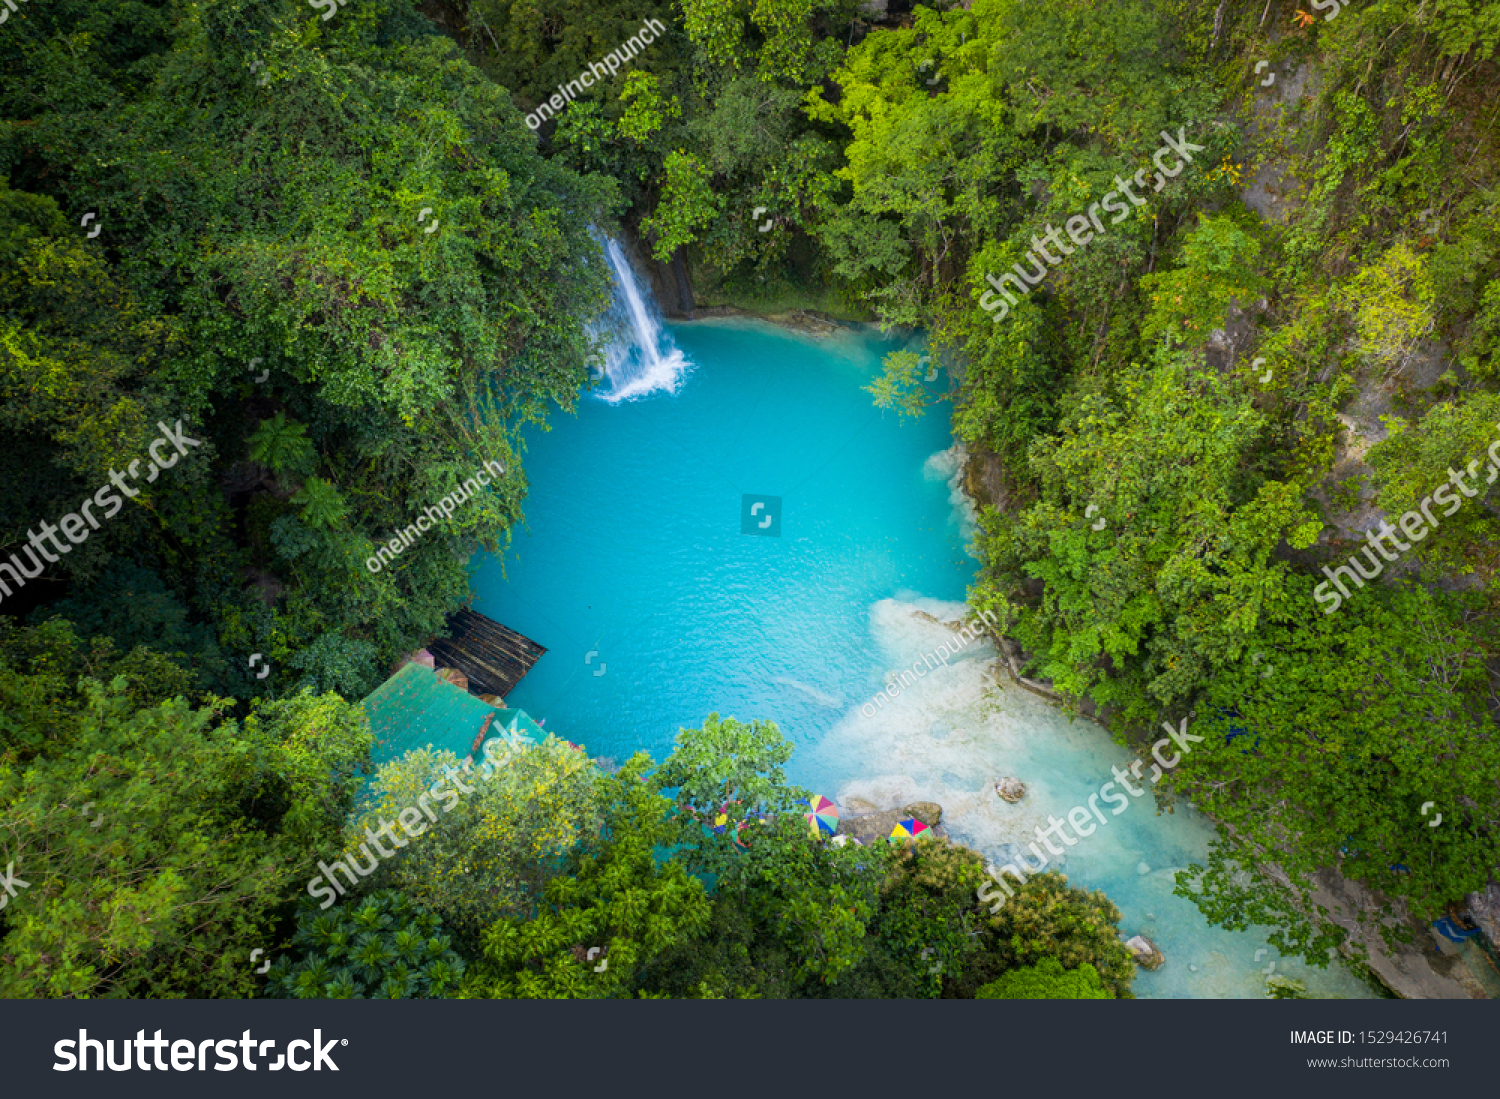 Kawasan waterfalls located on Cebu Island, Philippines - Beautiful waterfall in the jungle #1529426741